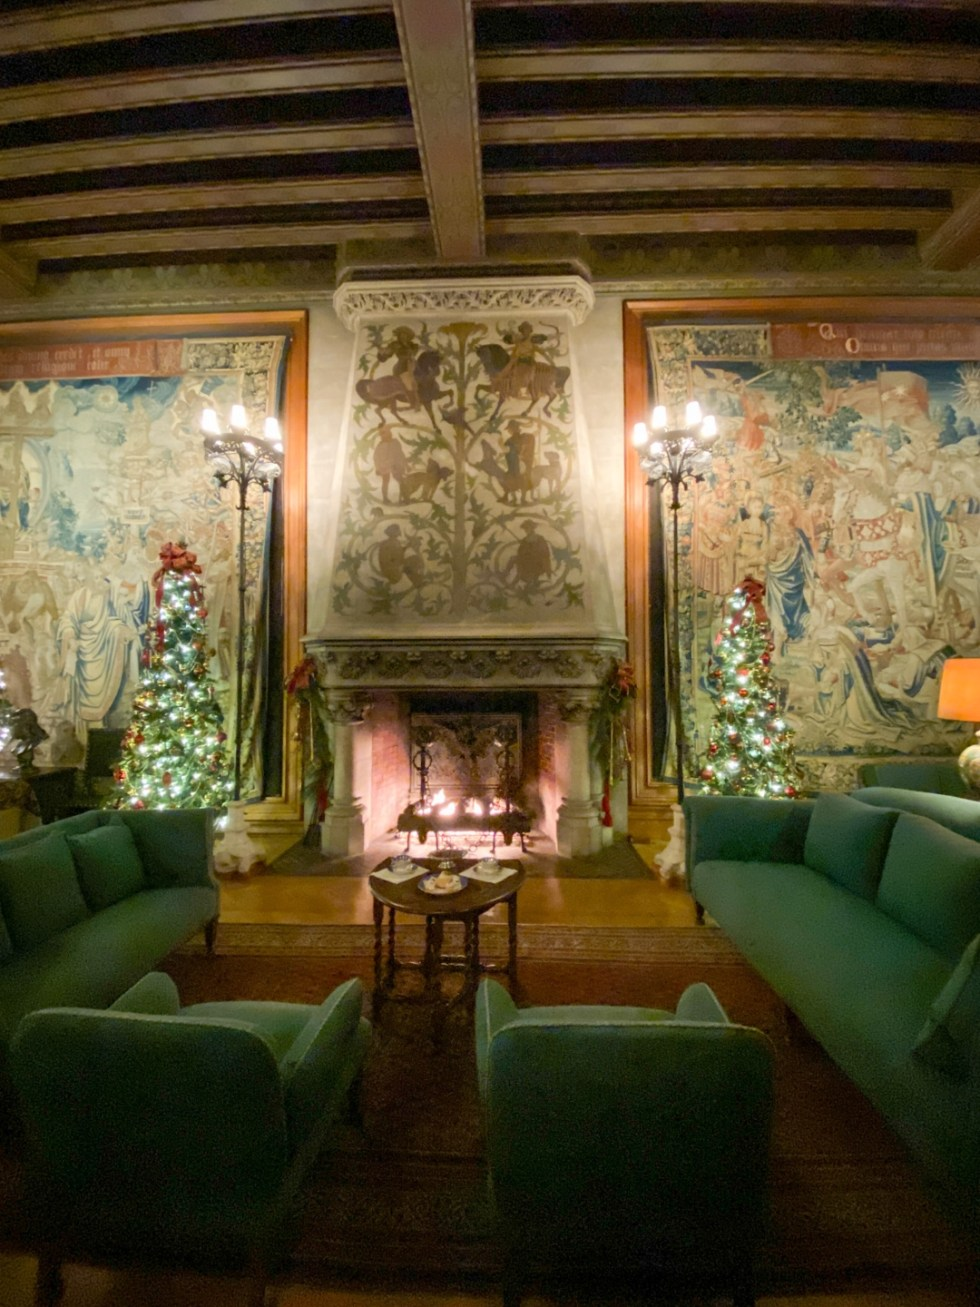 Christmas in Asheville: a Weekend Getaway During the Holidays - I'm Fixin' To - @imfixintoblog |Christmas in Asheville NC by popular NC lifestyle blog, I'm Fixin' To: image of green couches and chairs in front of a ornate fireplace at the Biltmore House.